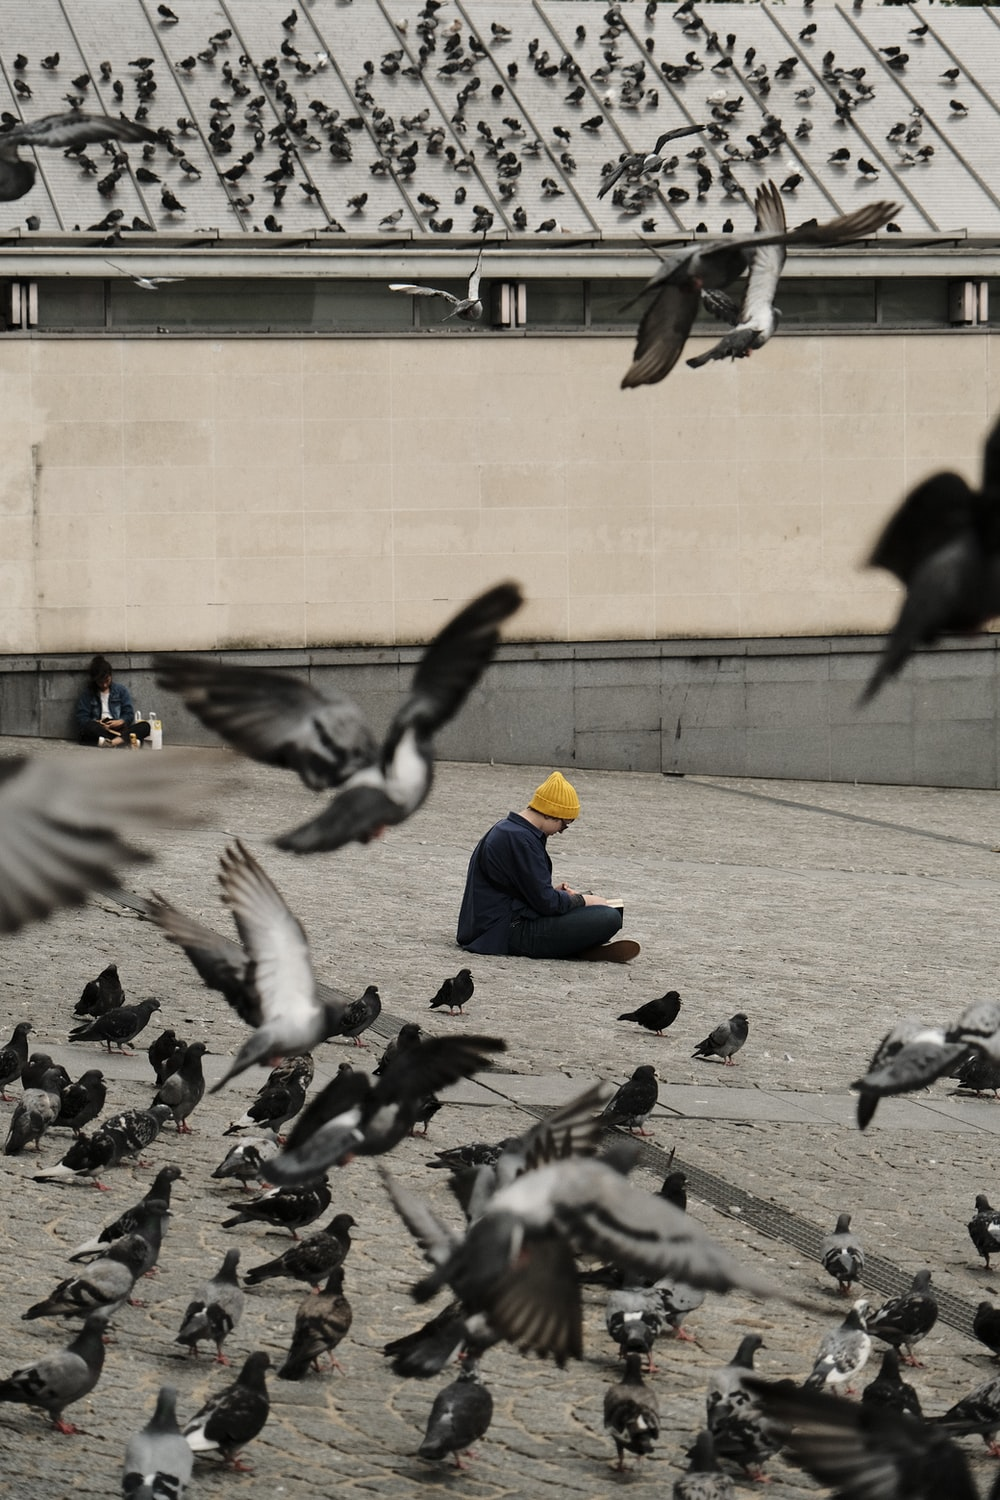 flock of pigeons on gray concrete floor during daytime